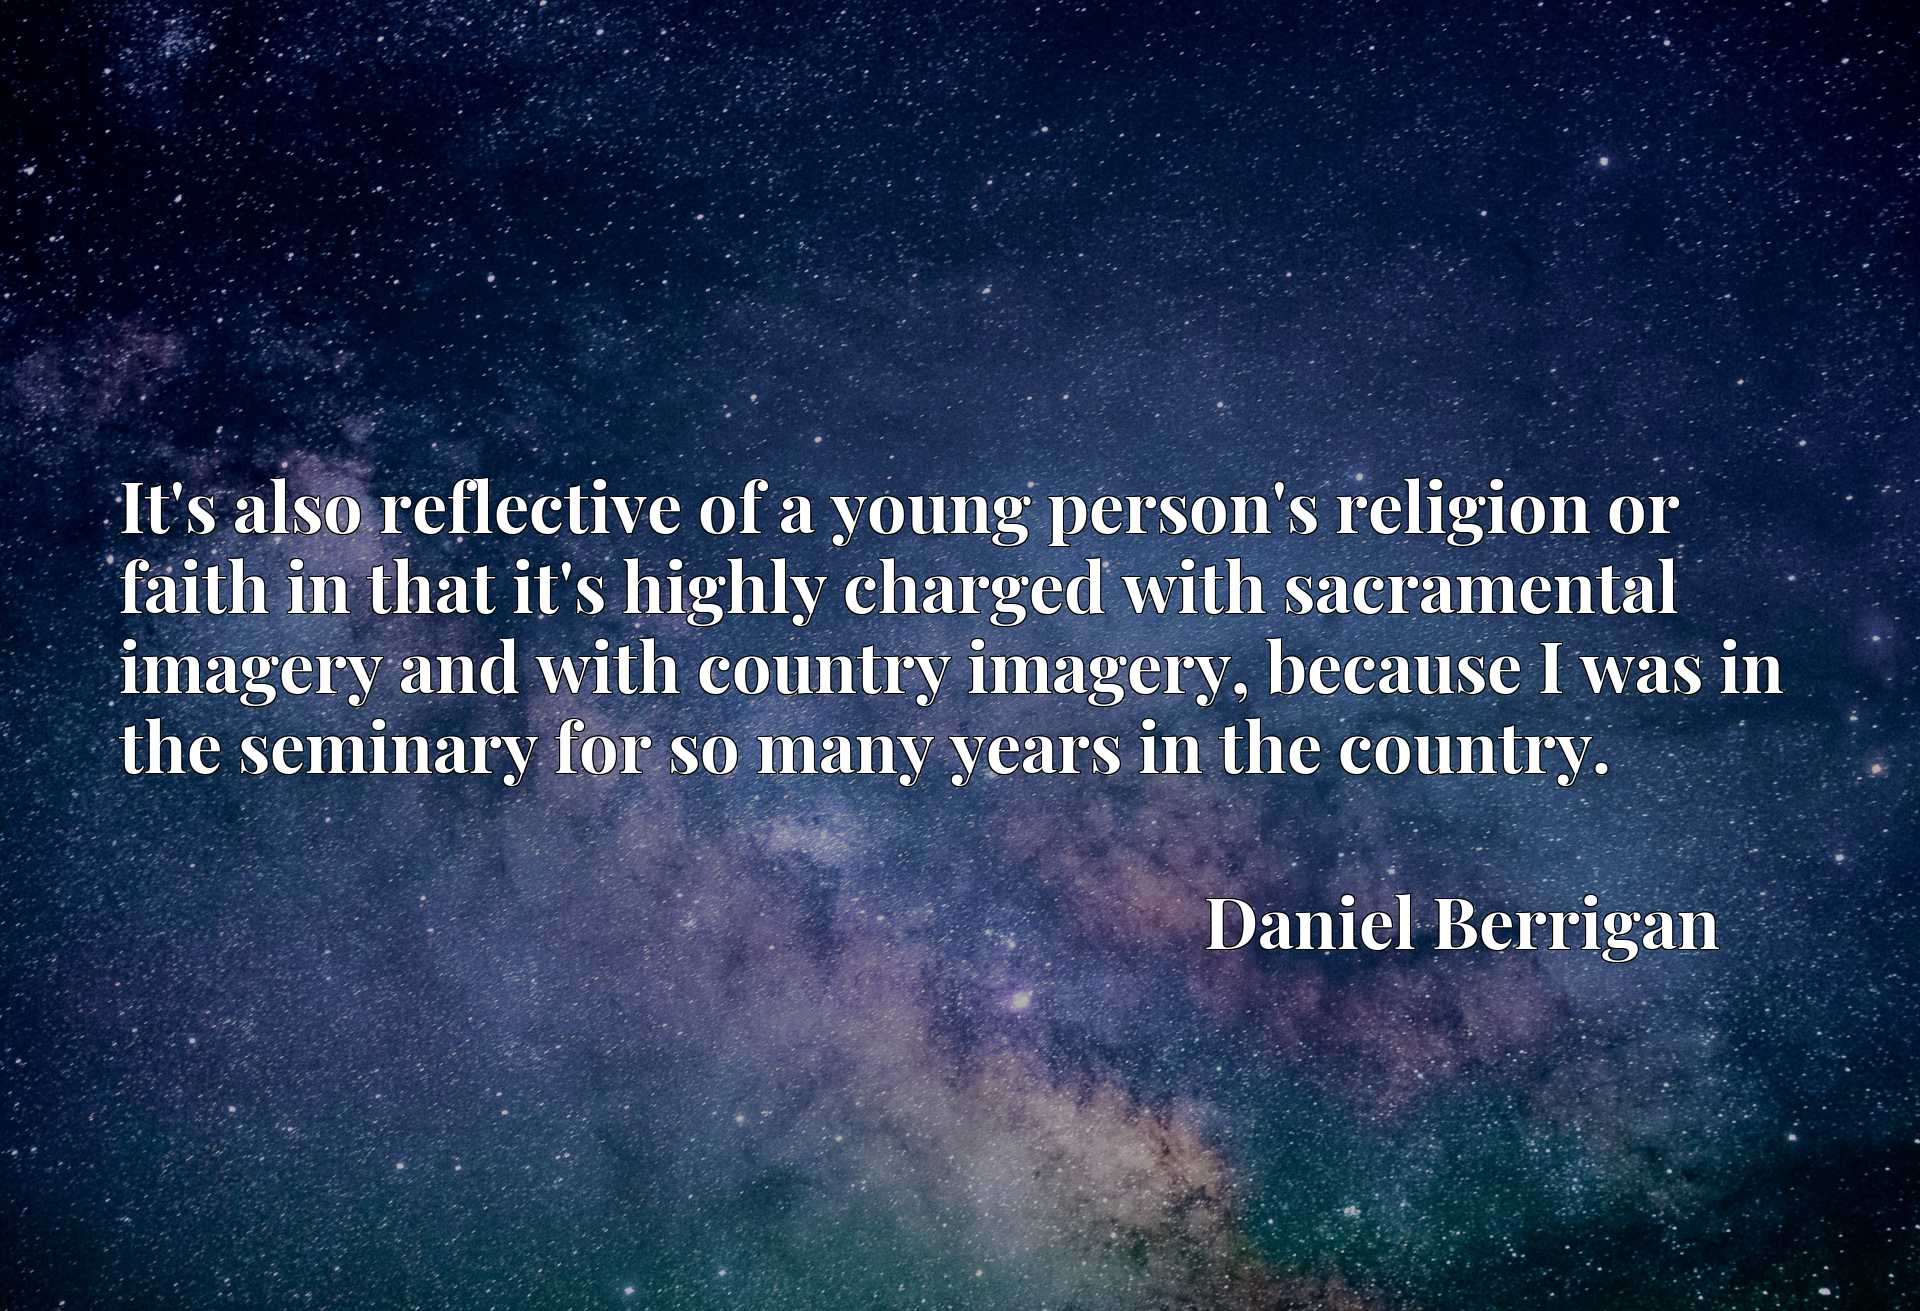 It's also reflective of a young person's religion or faith in that it's highly charged with sacramental imagery and with country imagery, because I was in the seminary for so many years in the country.